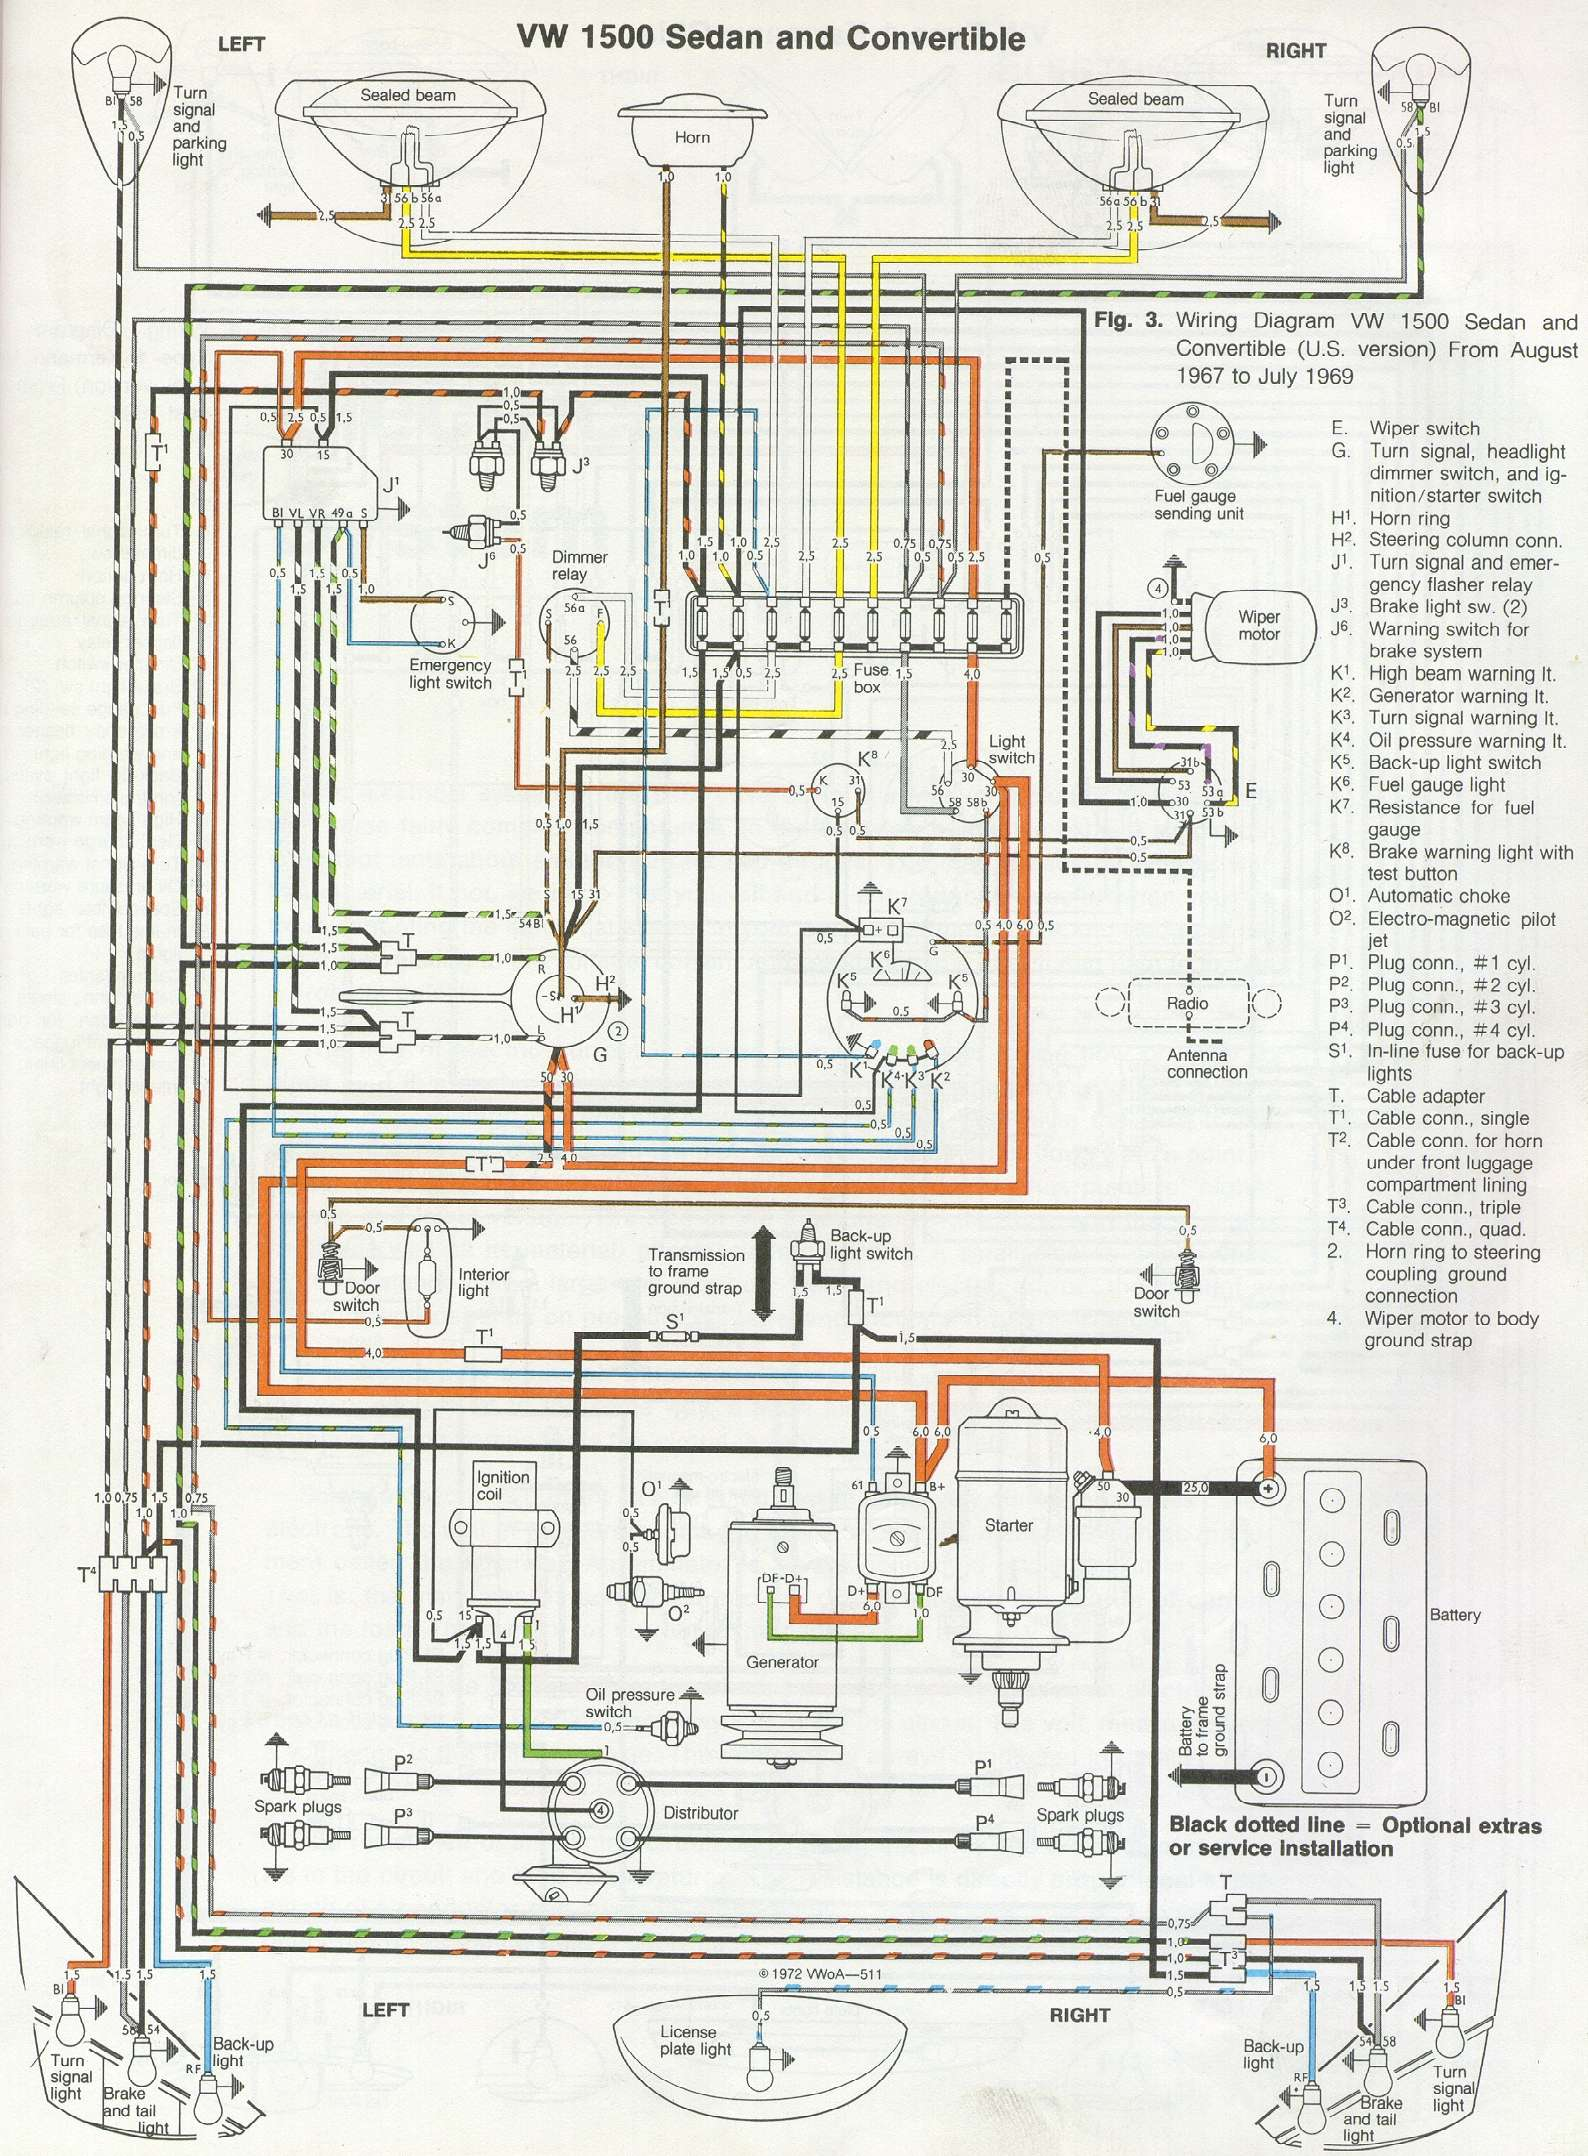 Wiring Diagram For Free Voltage Converter Using 555 Timer Circuit Caroldoey